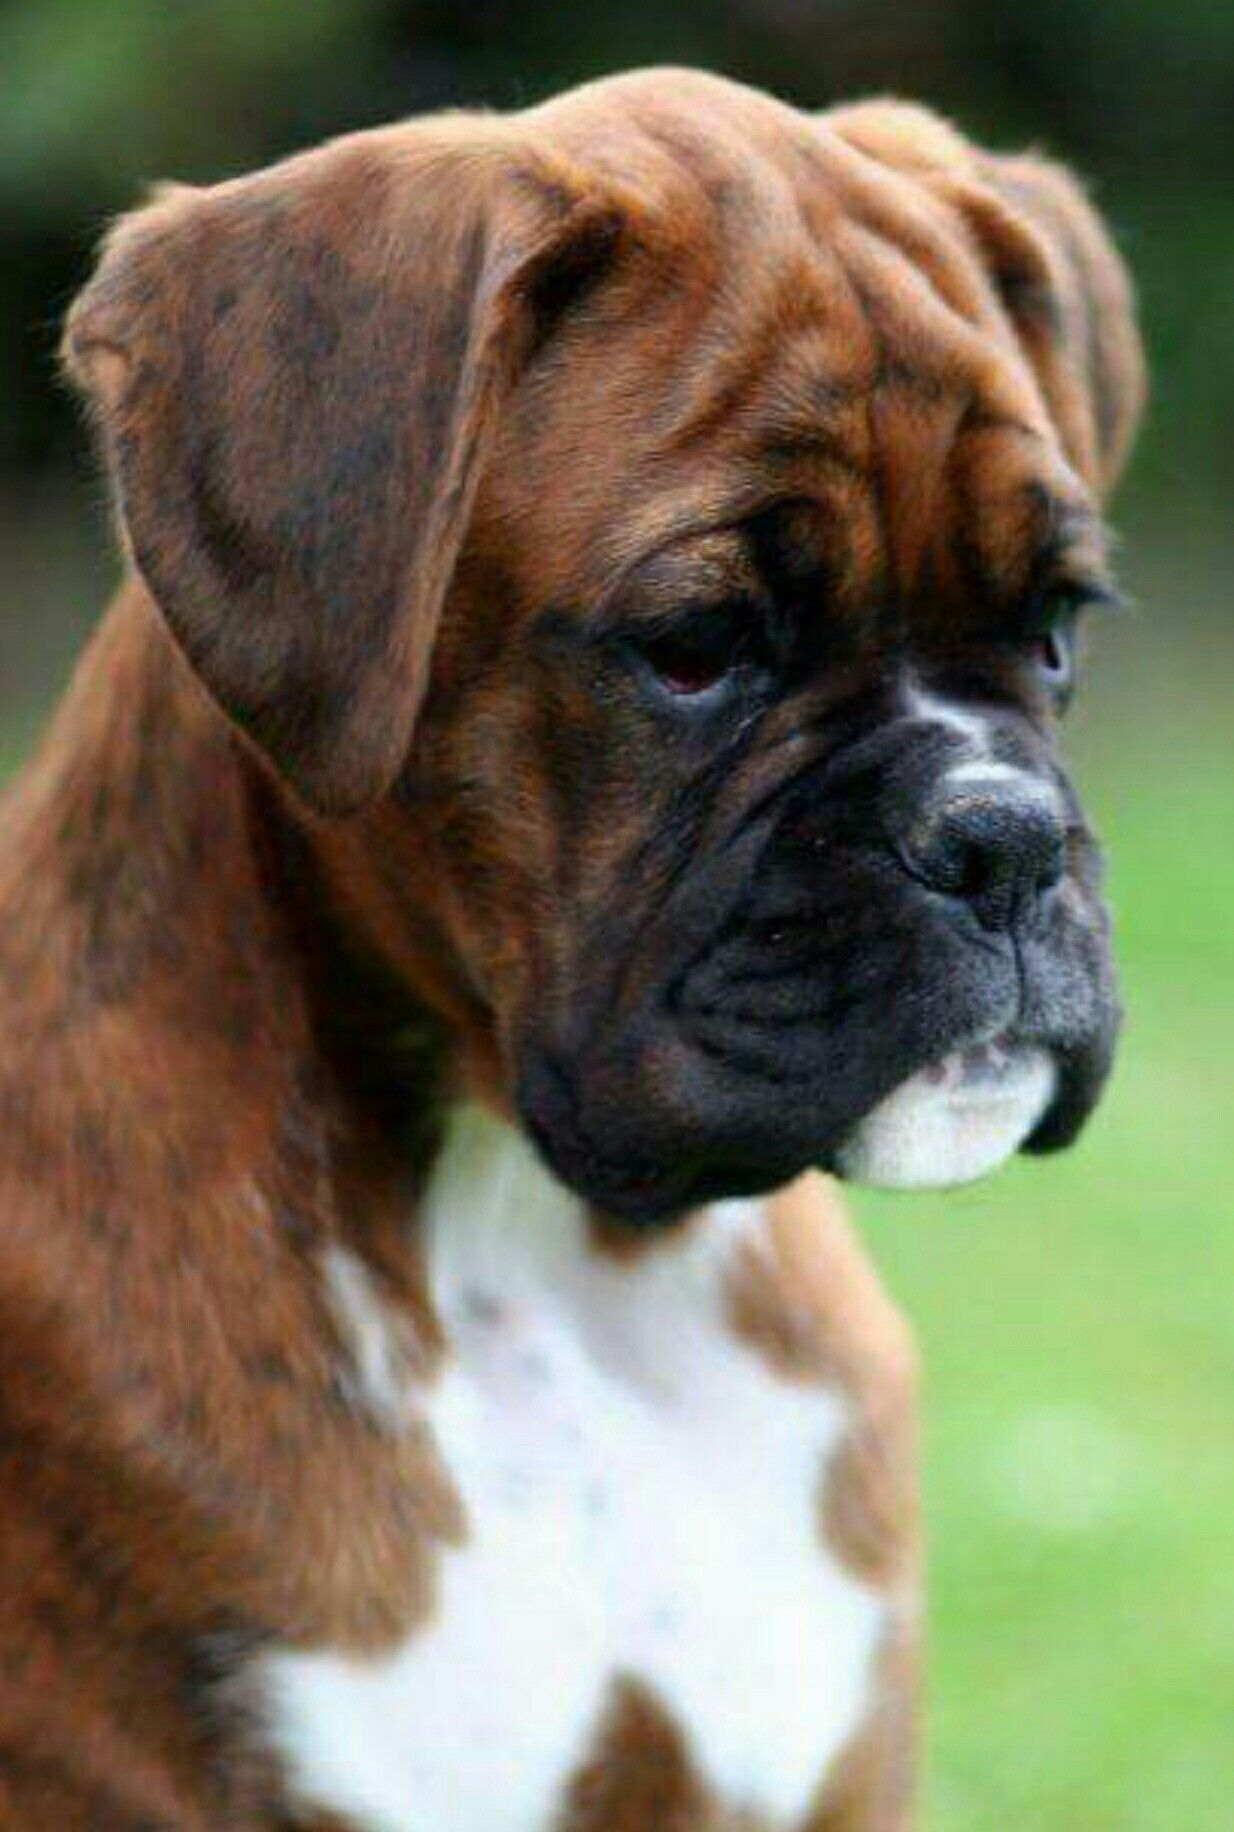 Apareamiento De Perros Boxer Videos Pin By Madel Garcia On I 39m Too Cute For You Perros